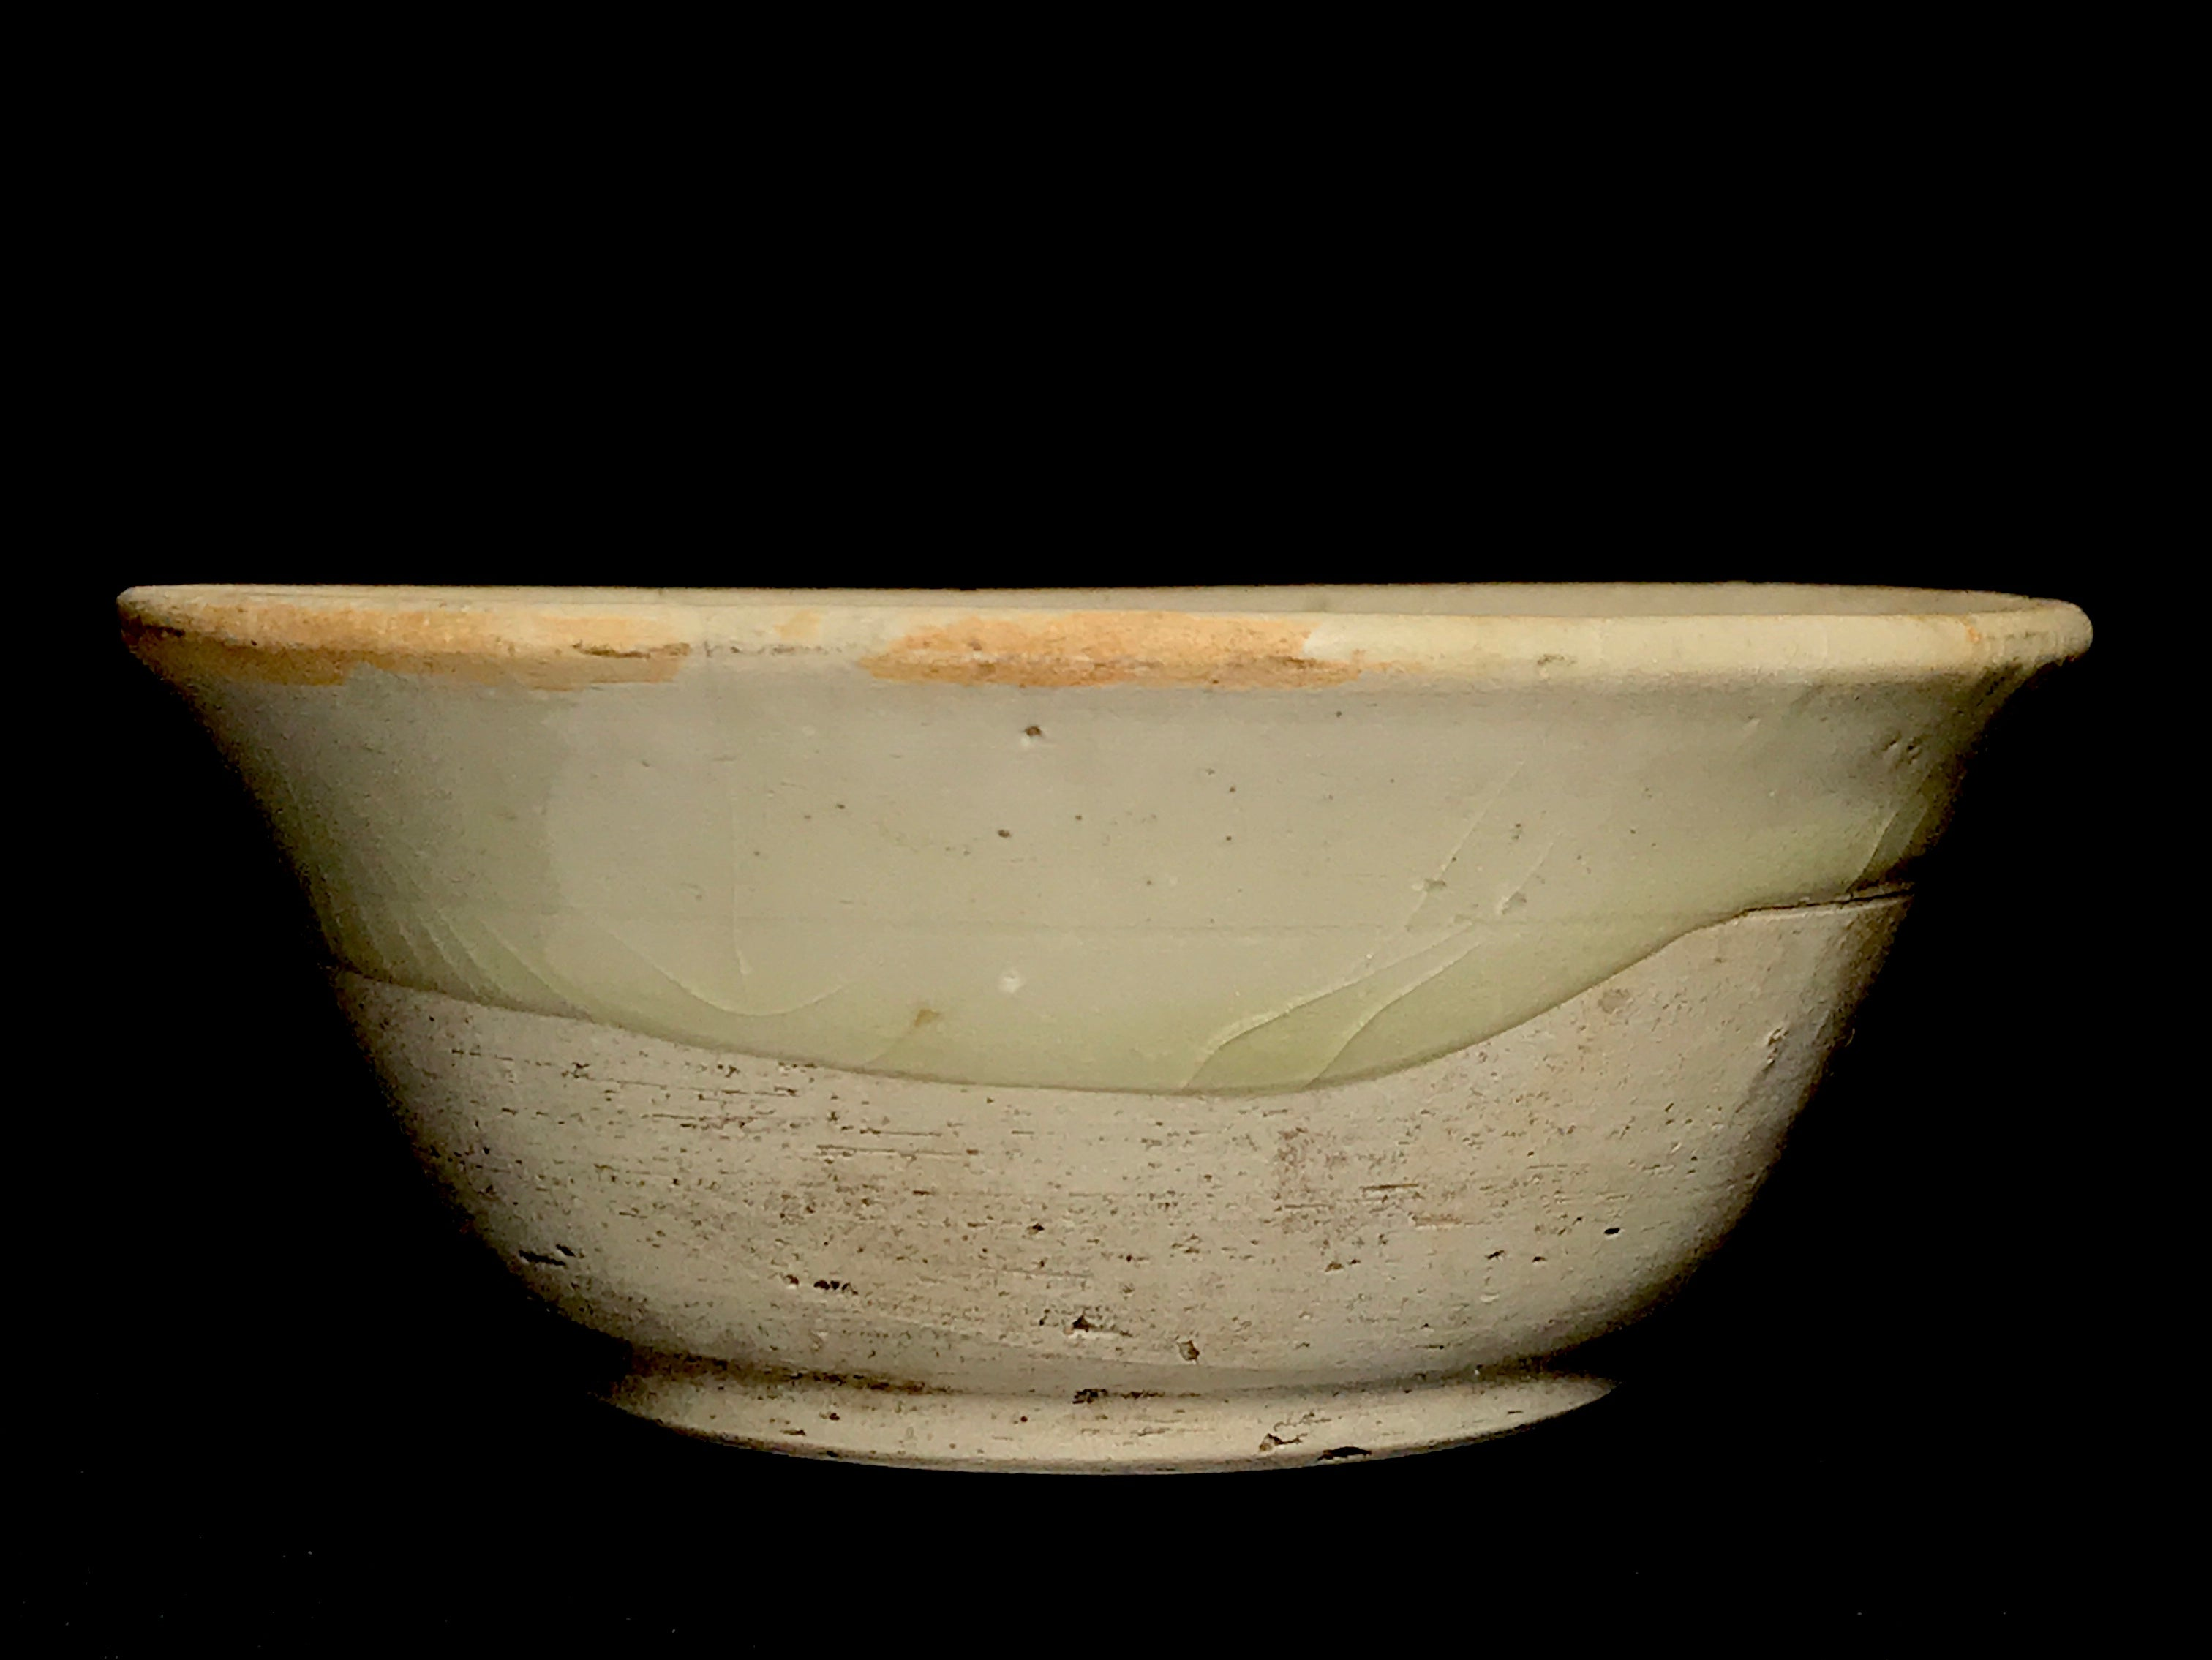 A Collection of 6 Tang Dynasty Pottery - 10 Dynasties